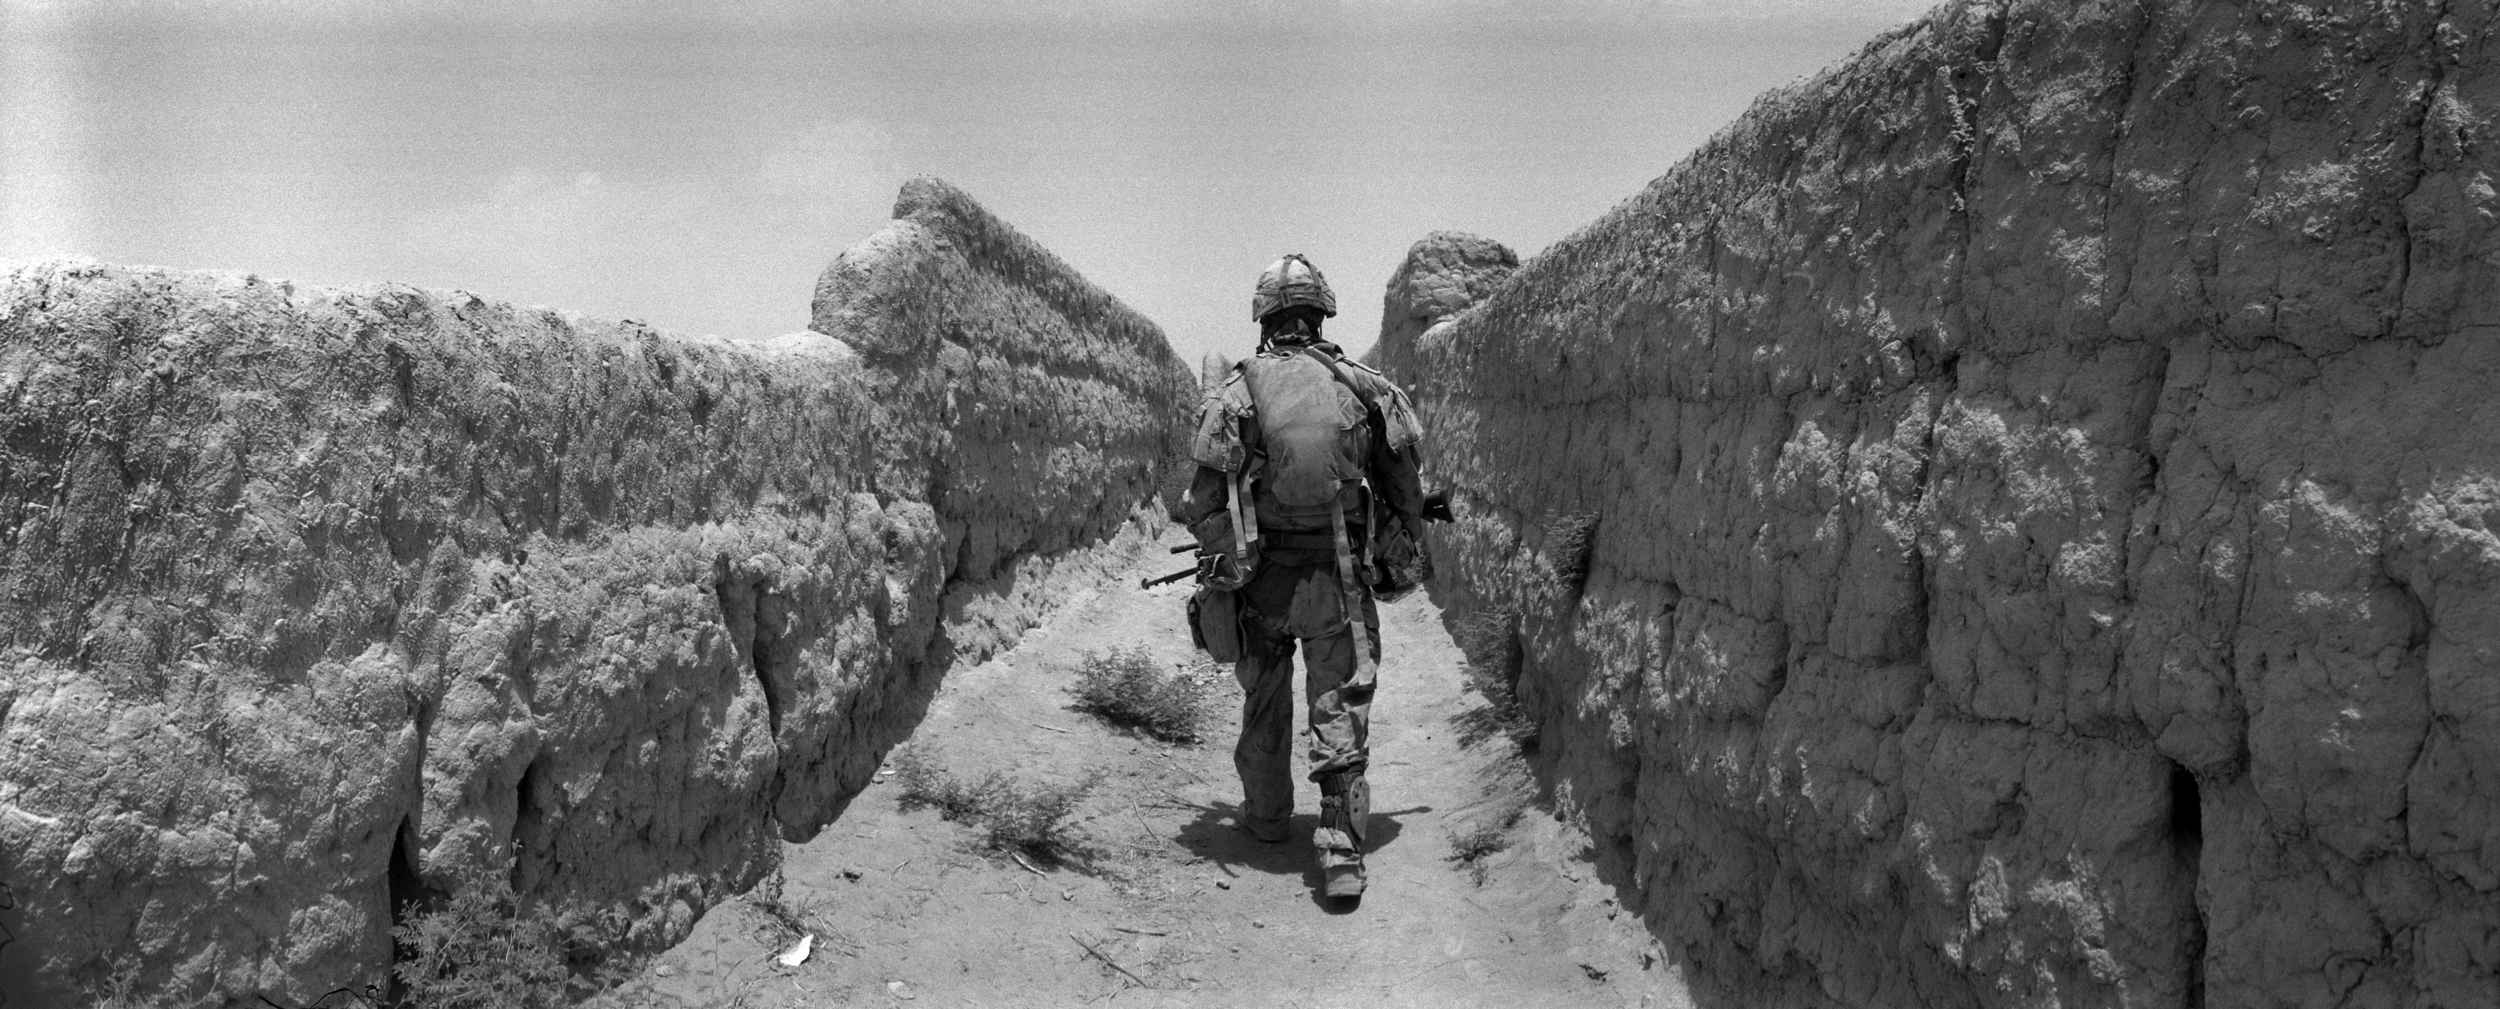 A Canadian soldier walks between narrow mud walls. The path is known as 'Route Nightmare' in Panjwaii District, Kandahar, Afghanistan. The mud walls, unpaved paths and roads are due to lack of development and reconstruction in almost all of the impoverished rural areas allow for planting of land mines and road side bombs by insurgents.Dec. 9, 2010 ©Louie Palu/The Alexia Foundation/ZUMAPRESS.com